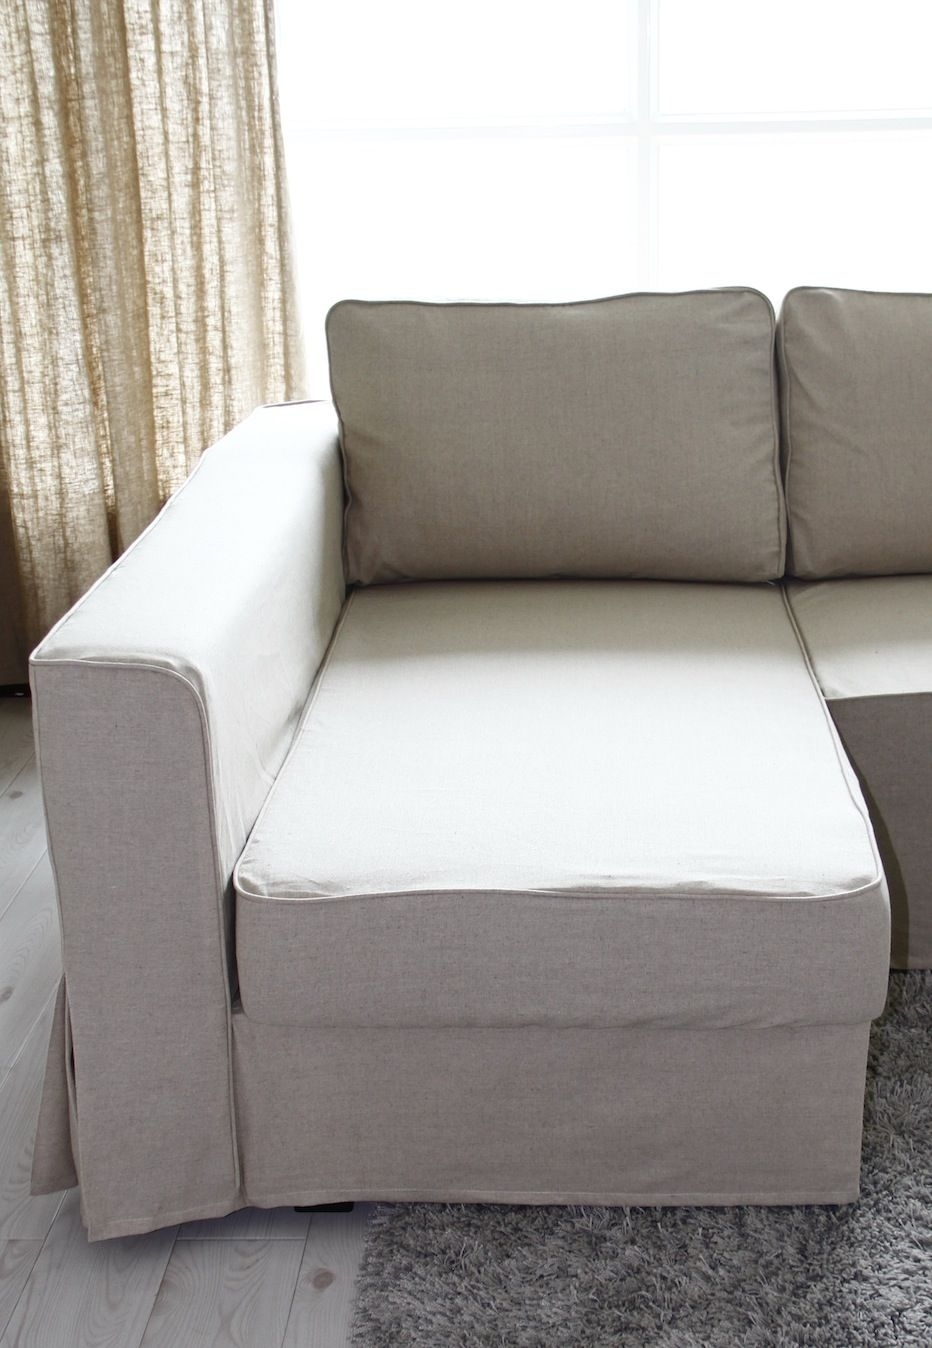 Loose Fit Linen Manstad Sofa Slipcovers Now Available | Sofa Within Manstad Sofas (Image 6 of 10)